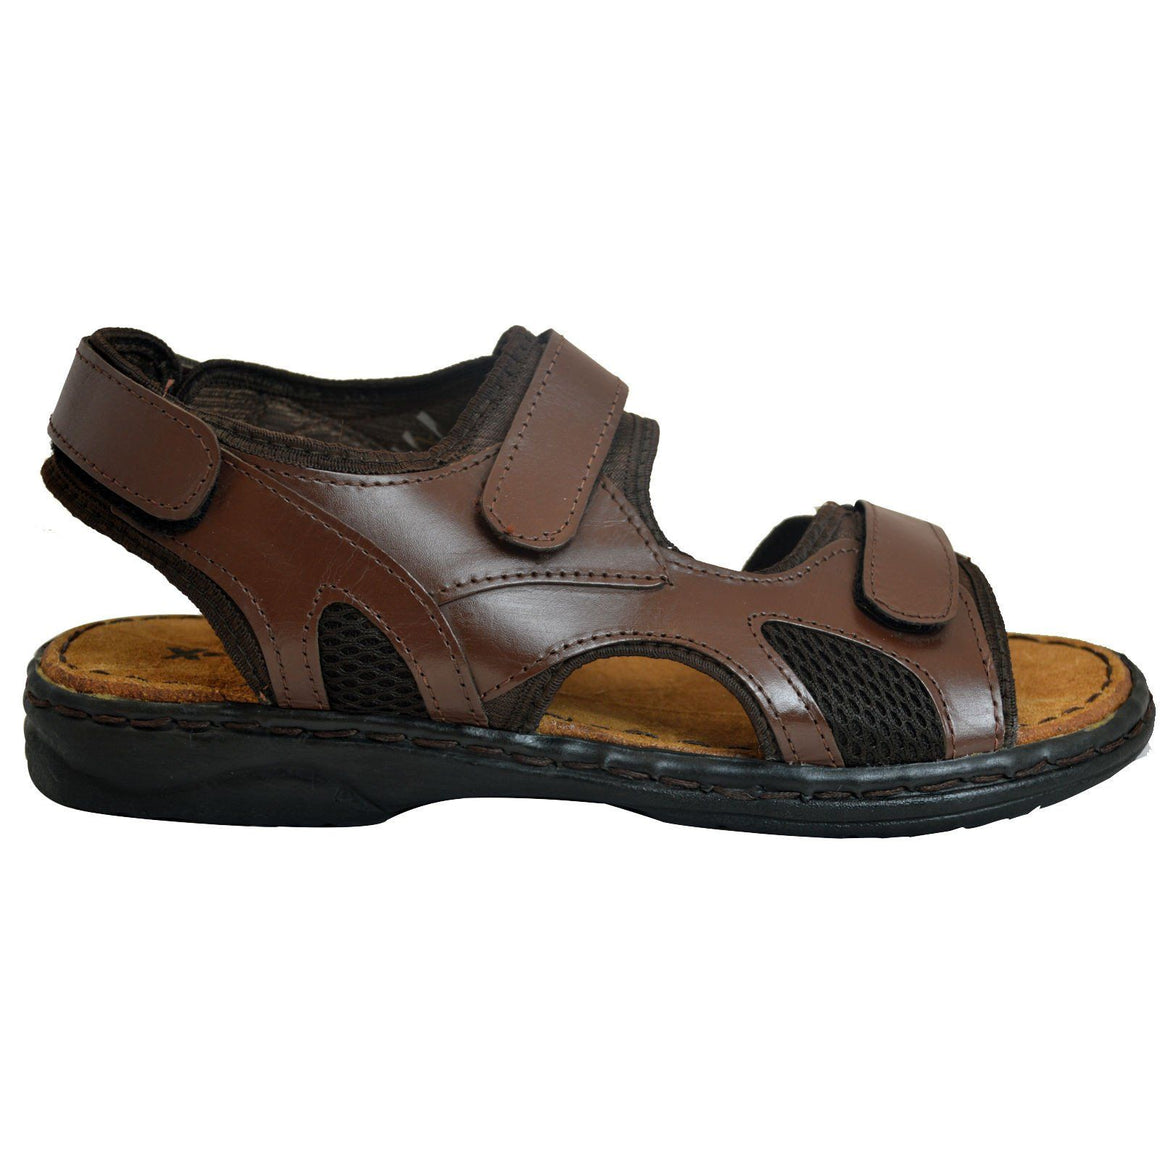 Mens Summer Sandals Leather Velcro Strap Beach Mules